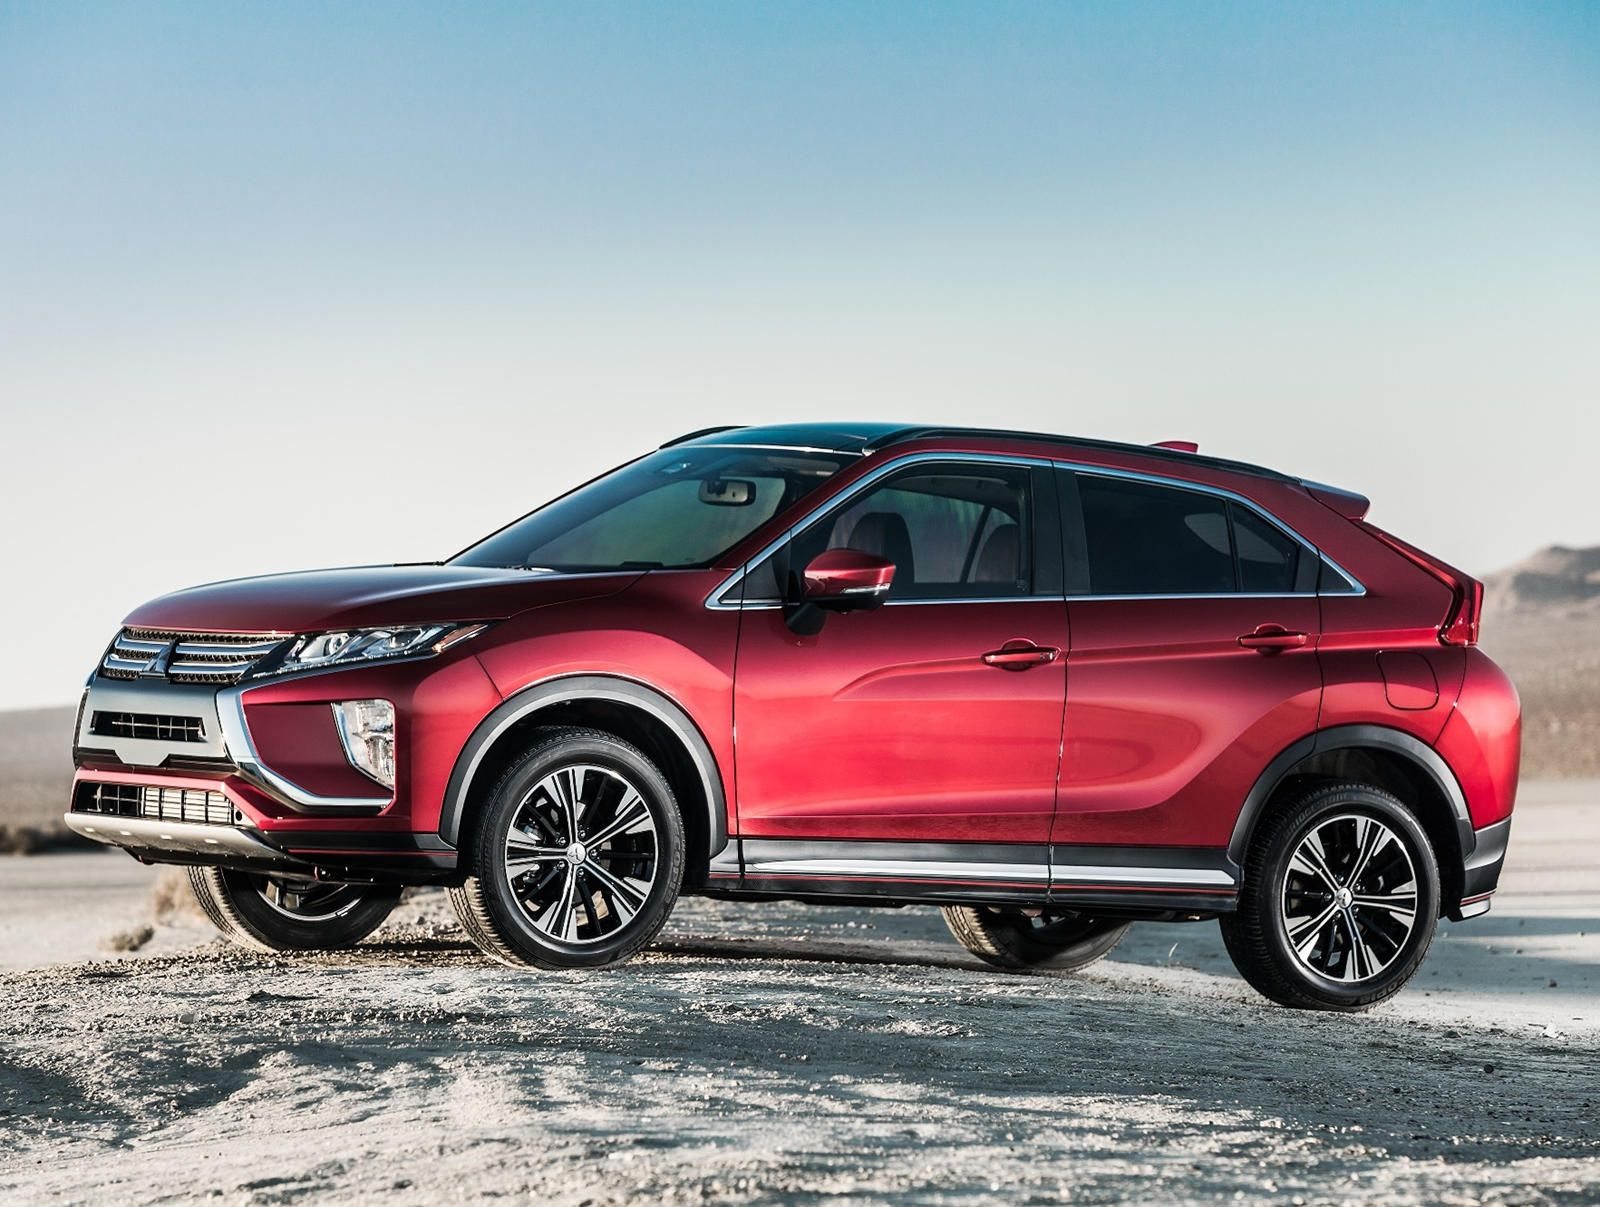 2020 Mitsubishi Eclipse Cross Is A Seriously Safe Crossover The Nhtsa Has Issued Its Latest Rating Mitsubishi Eclipse Mitsubishi New Cars